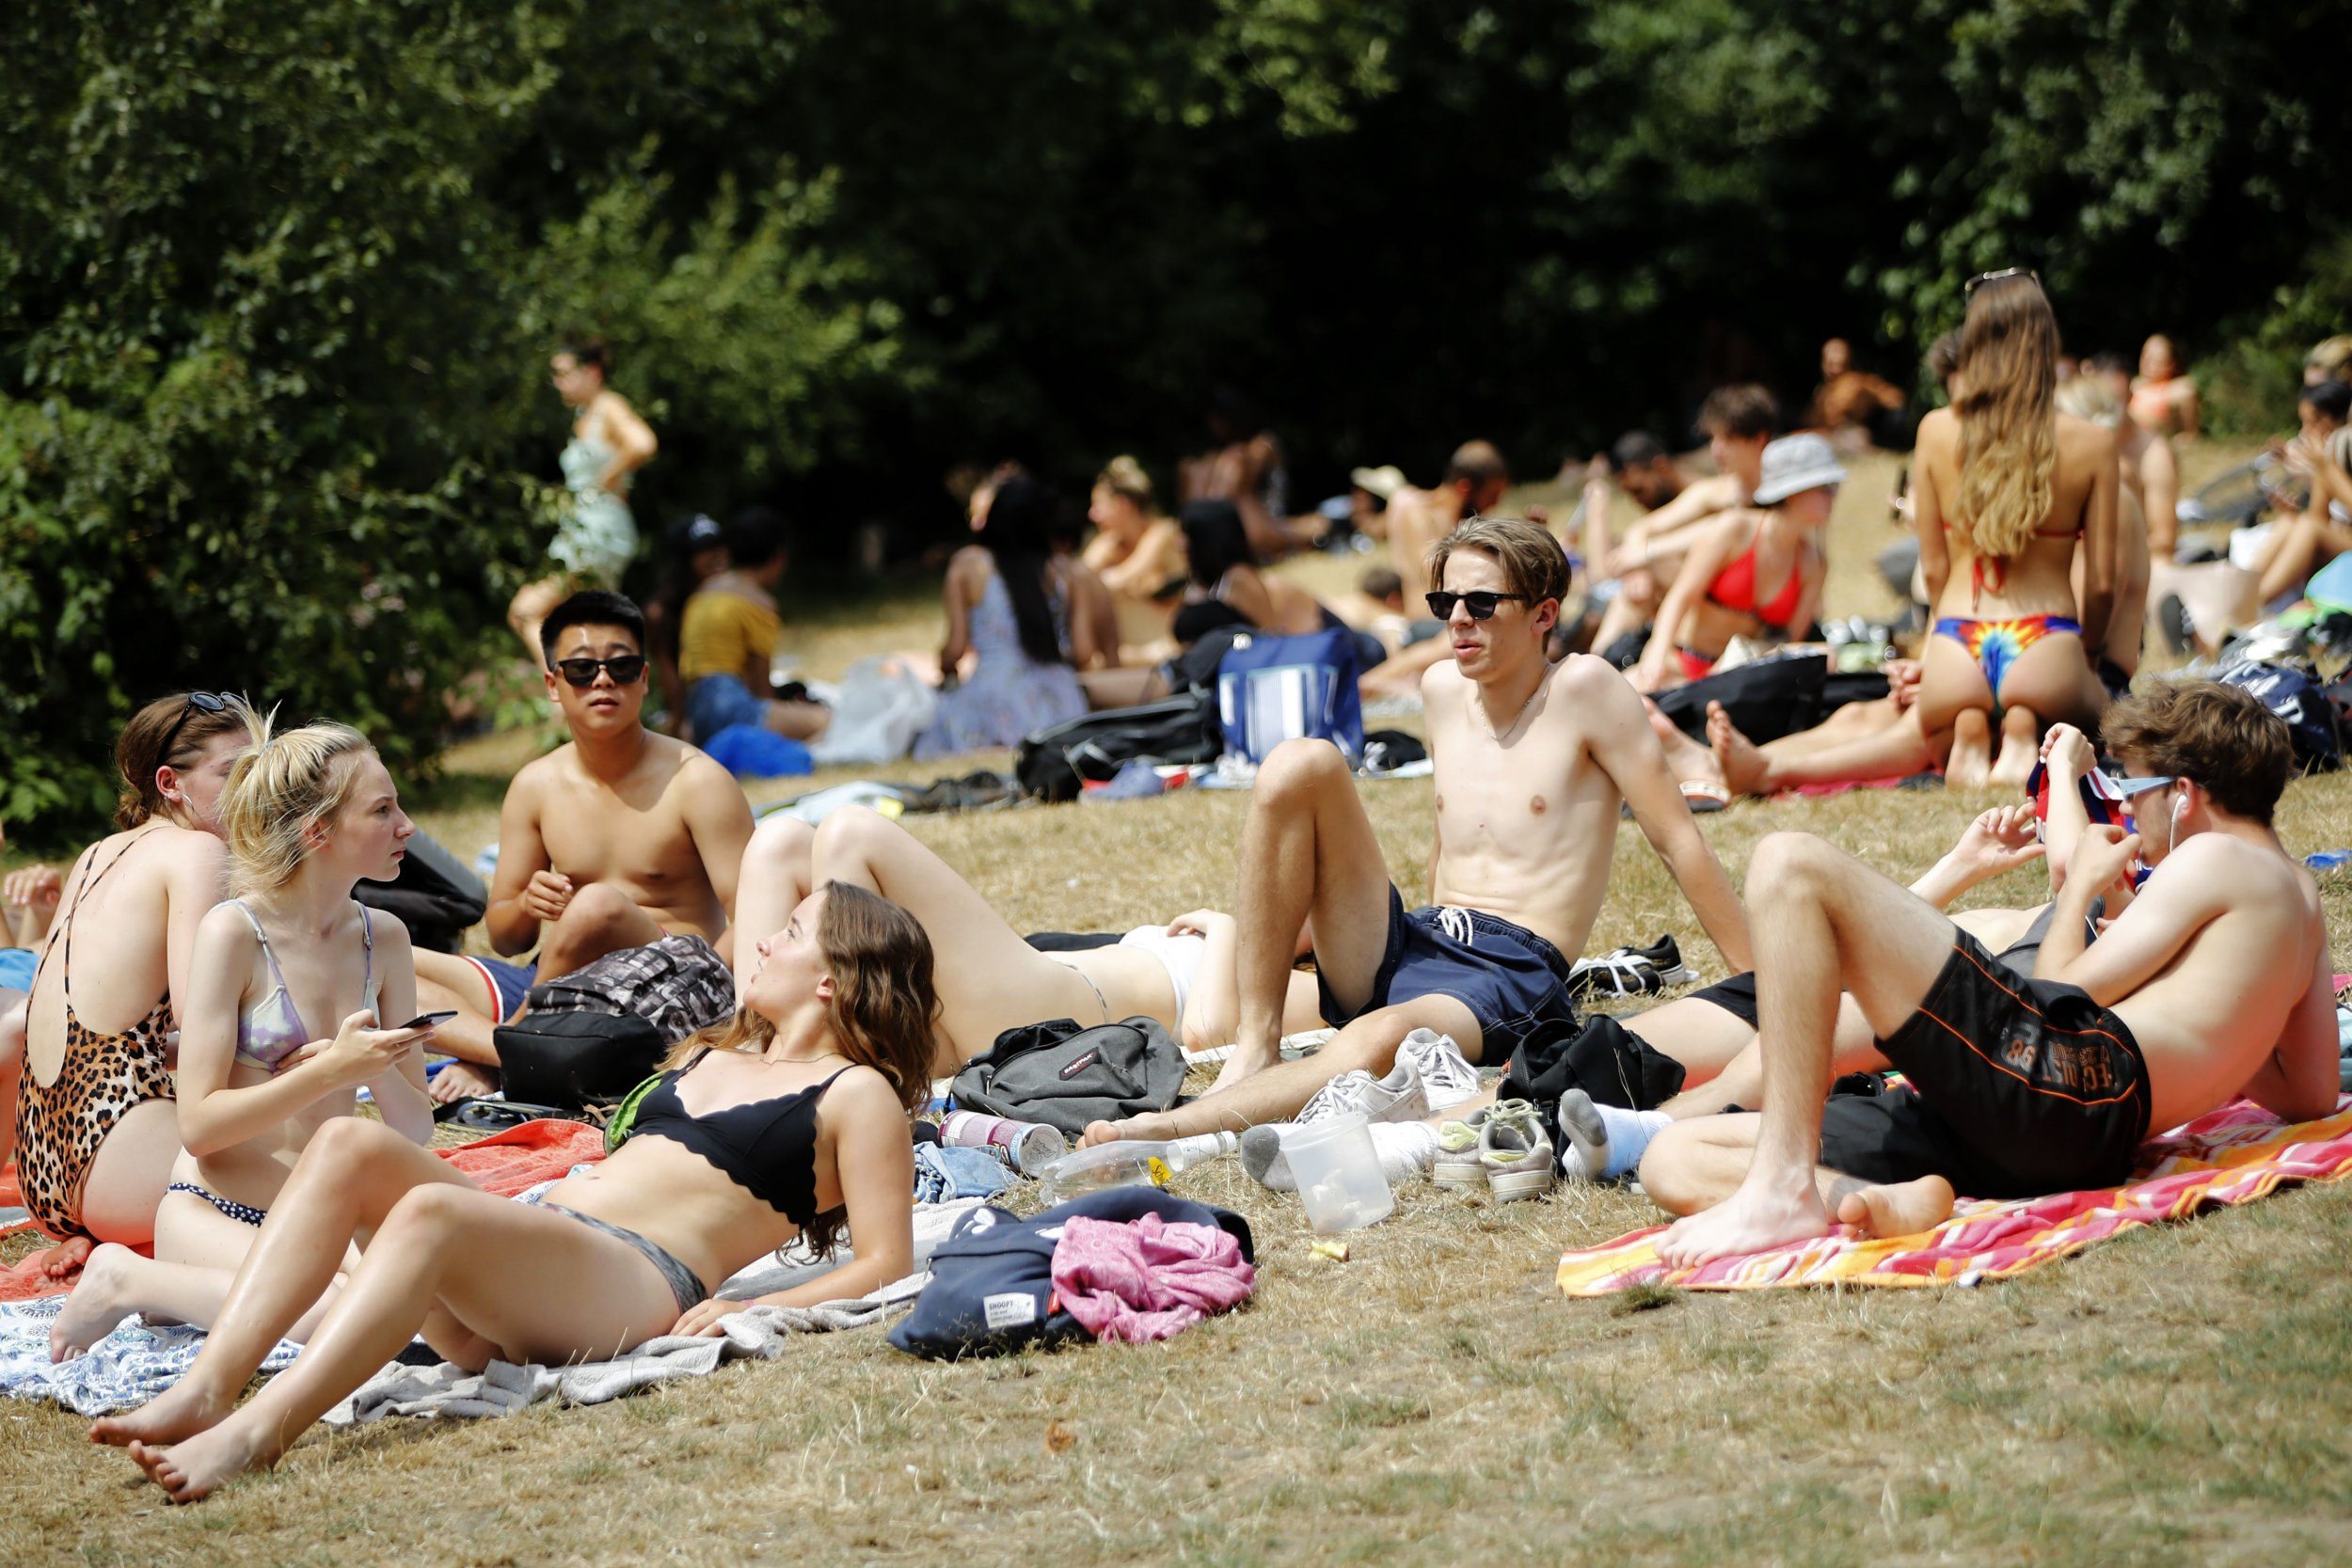 Sunbathers relax on Hampstead Heath in London on July 26, 2018. - Britain has been in the grip of its longest heatwave in decades, sparking wildfires in northwest England, water restrictions in Northern Ireland and record-breaking temperatures in Scotland. (Photo by Tolga AKMEN / AFP) (Photo credit should read TOLGA AKMEN/AFP/Getty Images)